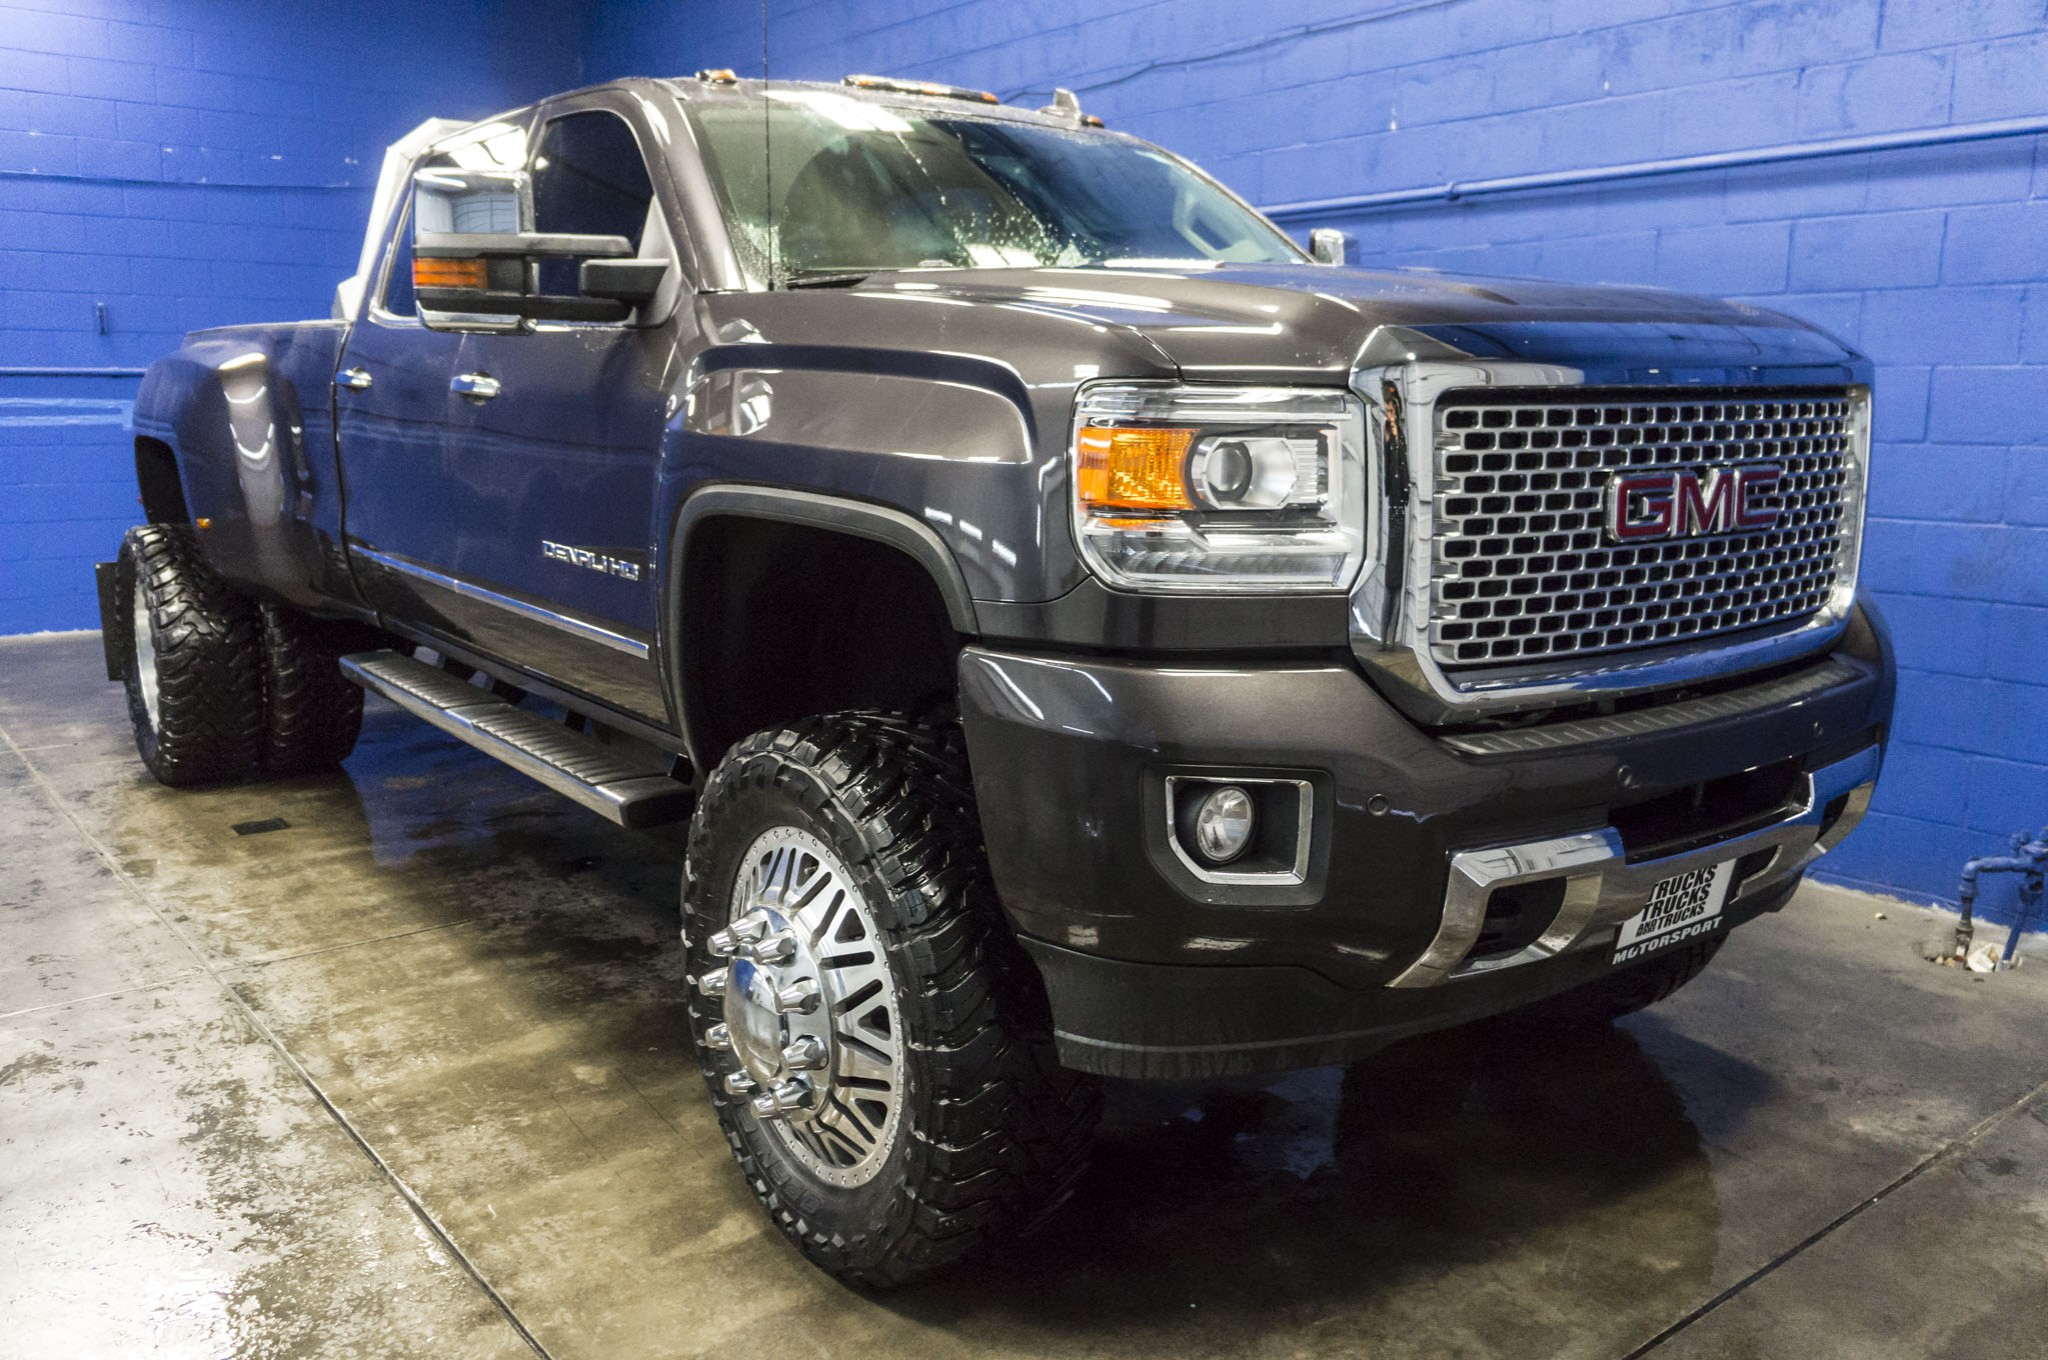 Gmc 3500 Denali Diesel For Sale >> Used Lifted 2015 Gmc Sierra 3500 Denali Dually 4x4 Diesel Truck